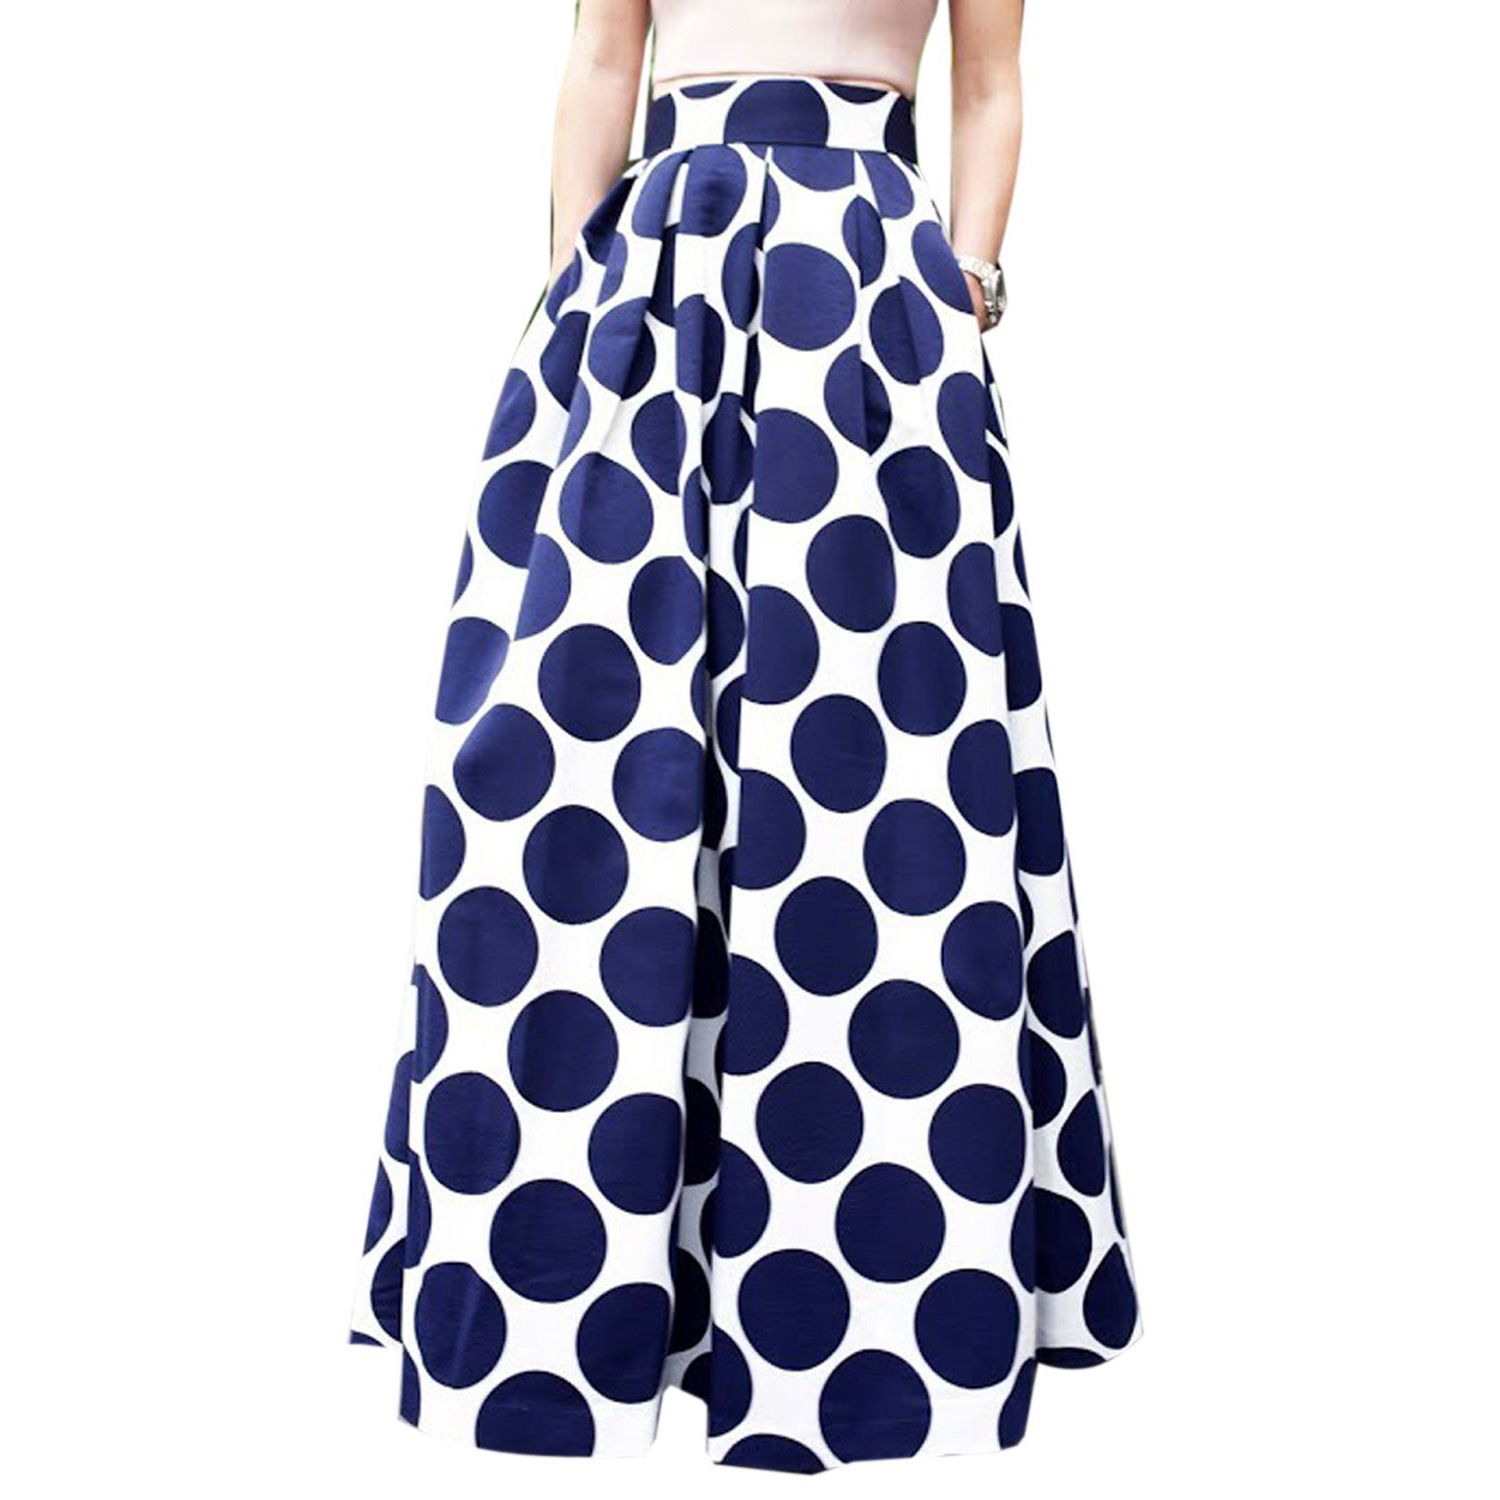 LARRONKETY Store Fashion Causal Spring Autumn Navy Blue Polka Dots Long Saia Tutu Skirts Bodycon High Waist Maxi A Line Pleated Skirt for Women